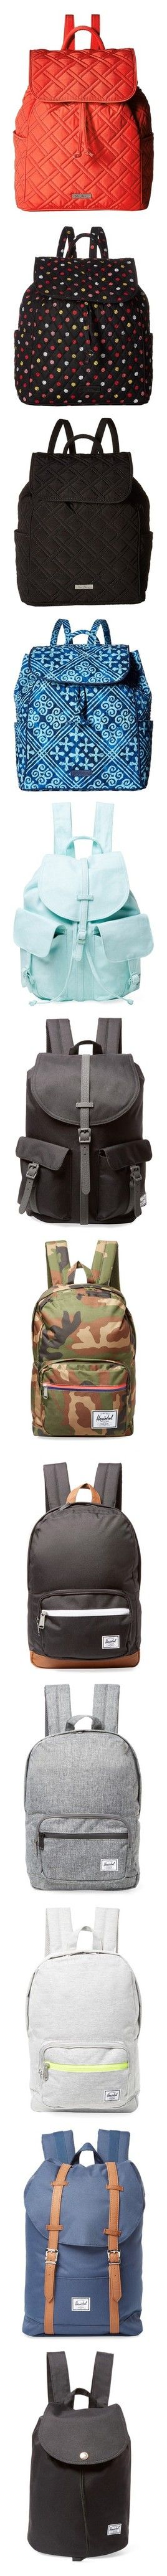 """""""Backpacks.3"""" by falconry ❤ liked on Polyvore featuring bags, backpacks, cotton drawstring bags, drawstring rucksack, day pack backpack, flap backpack, cotton drawstring backpack, vera bradley, cotton backpacks and drawstring knapsack"""